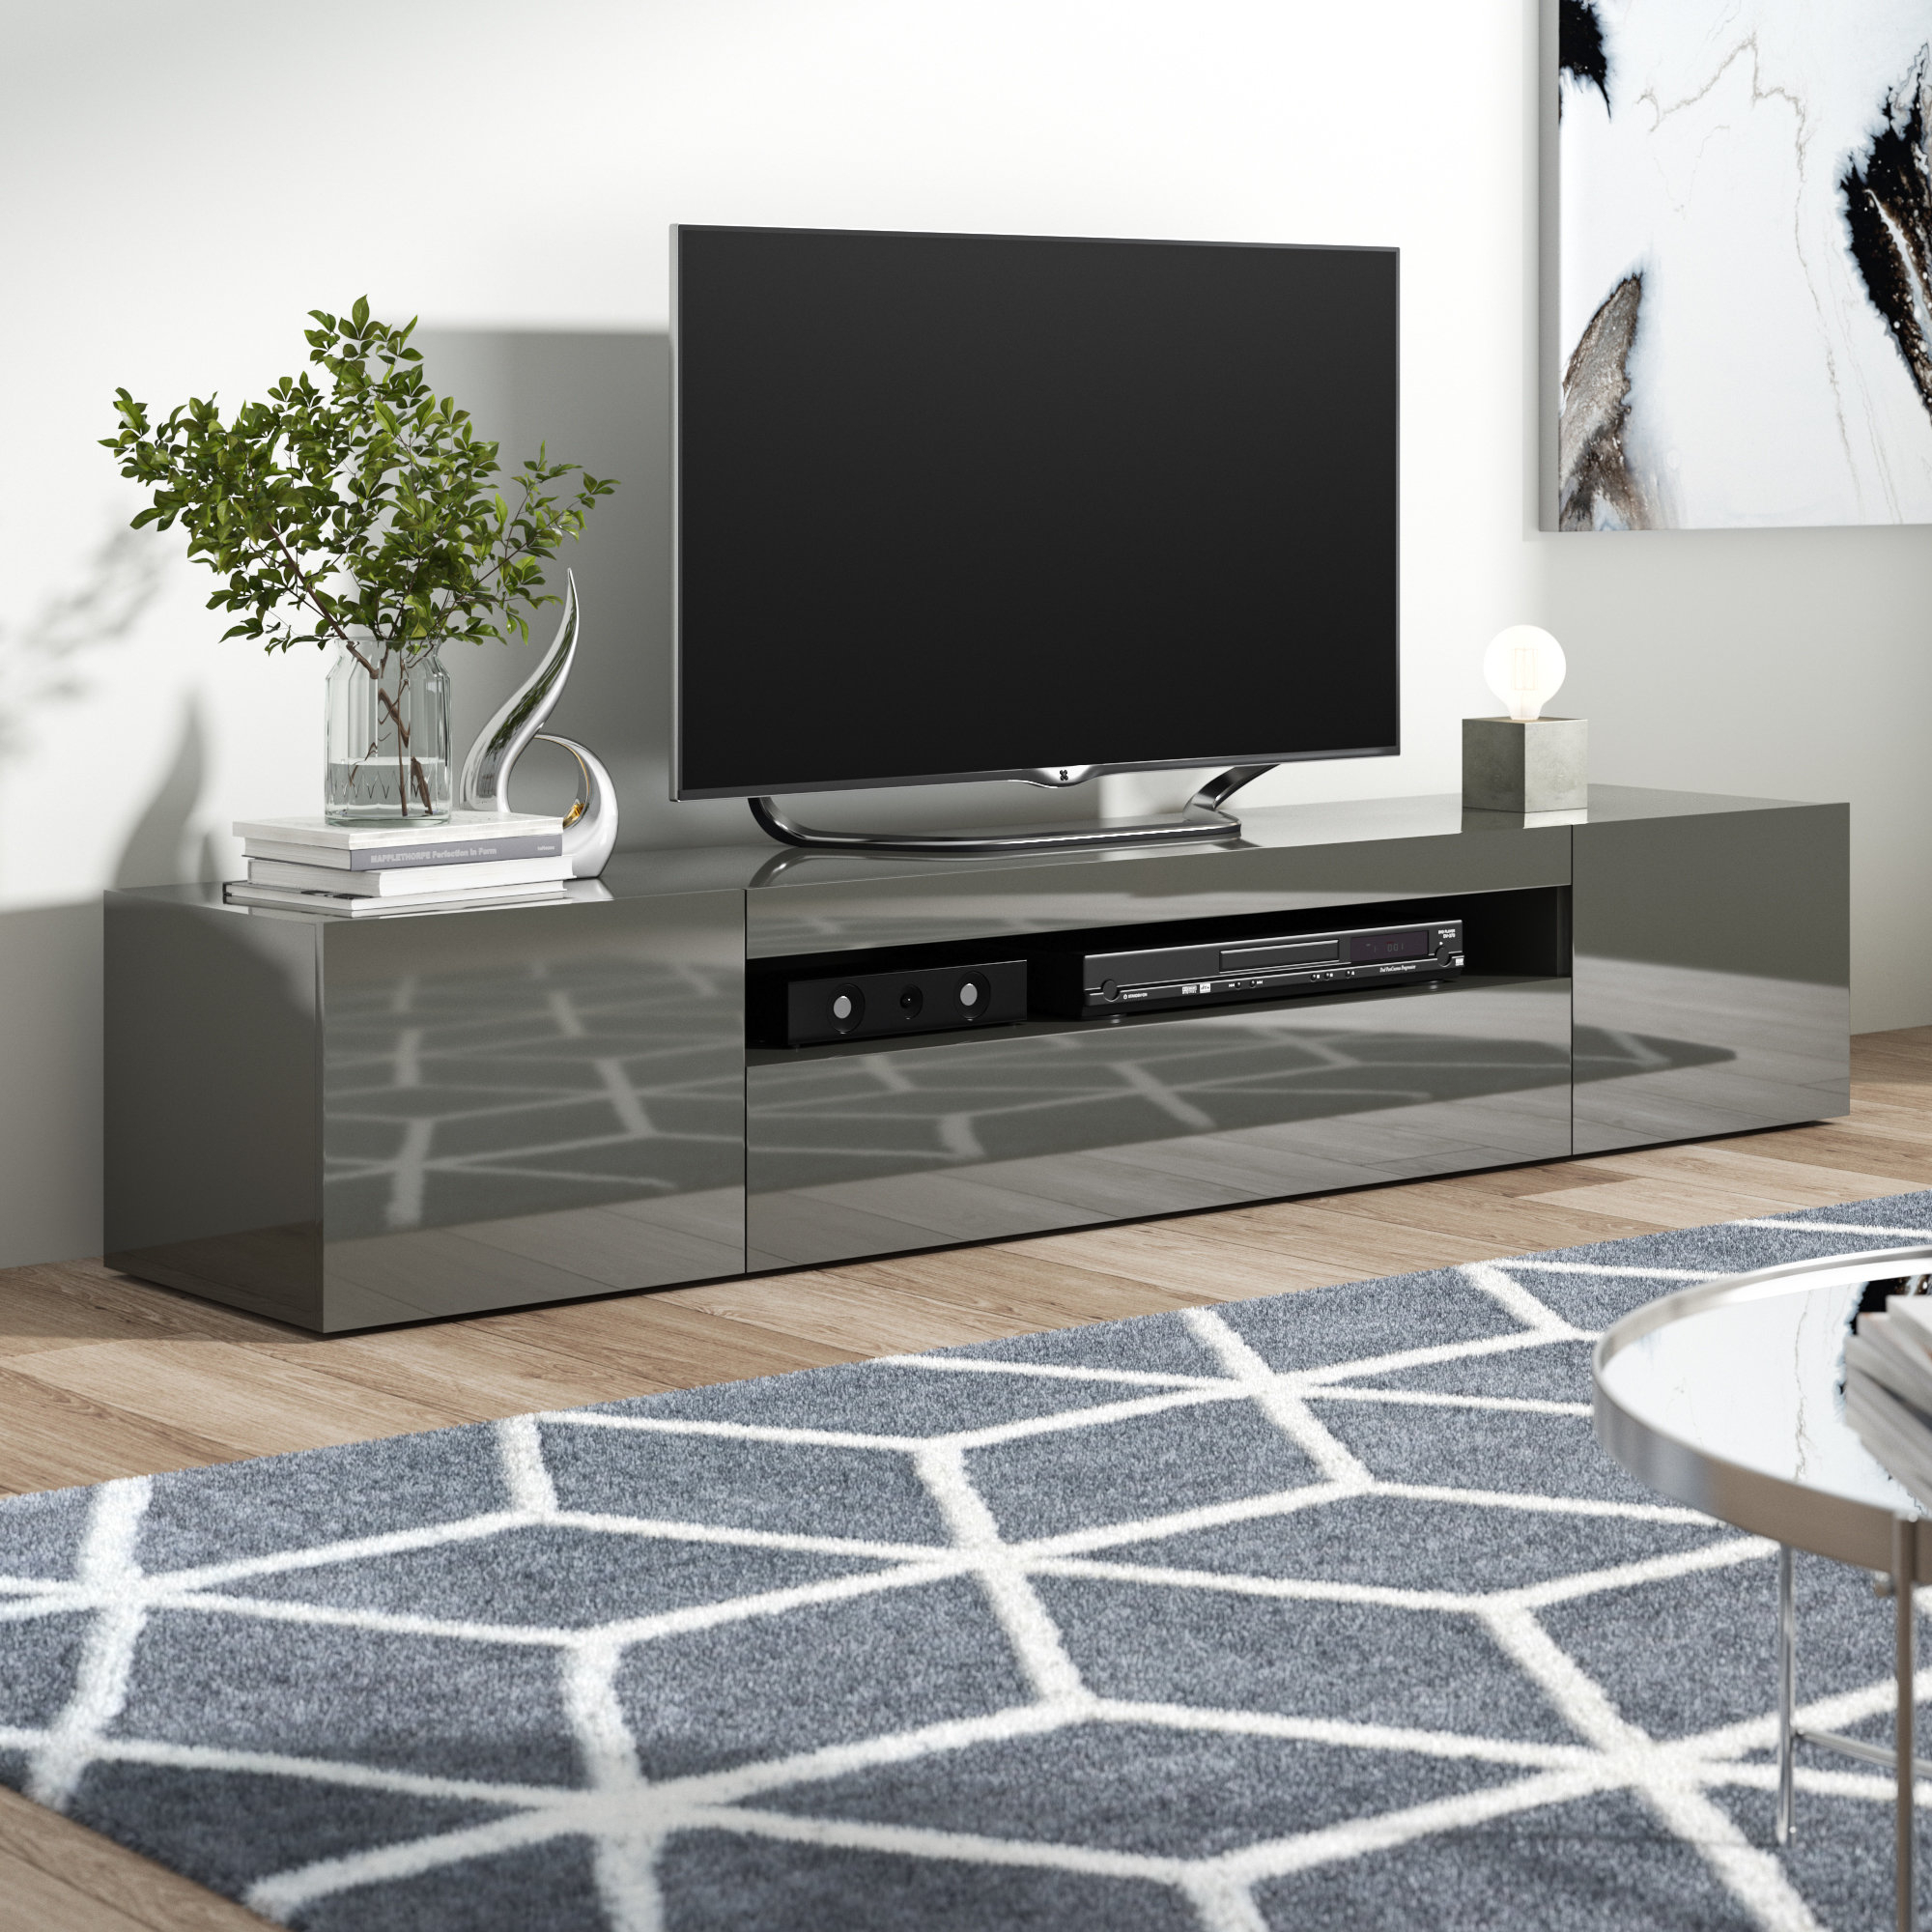 Modern Tv Stands You'll Love | Wayfair.co.uk with regard to Valencia 70 Inch Tv Stands (Image 11 of 30)